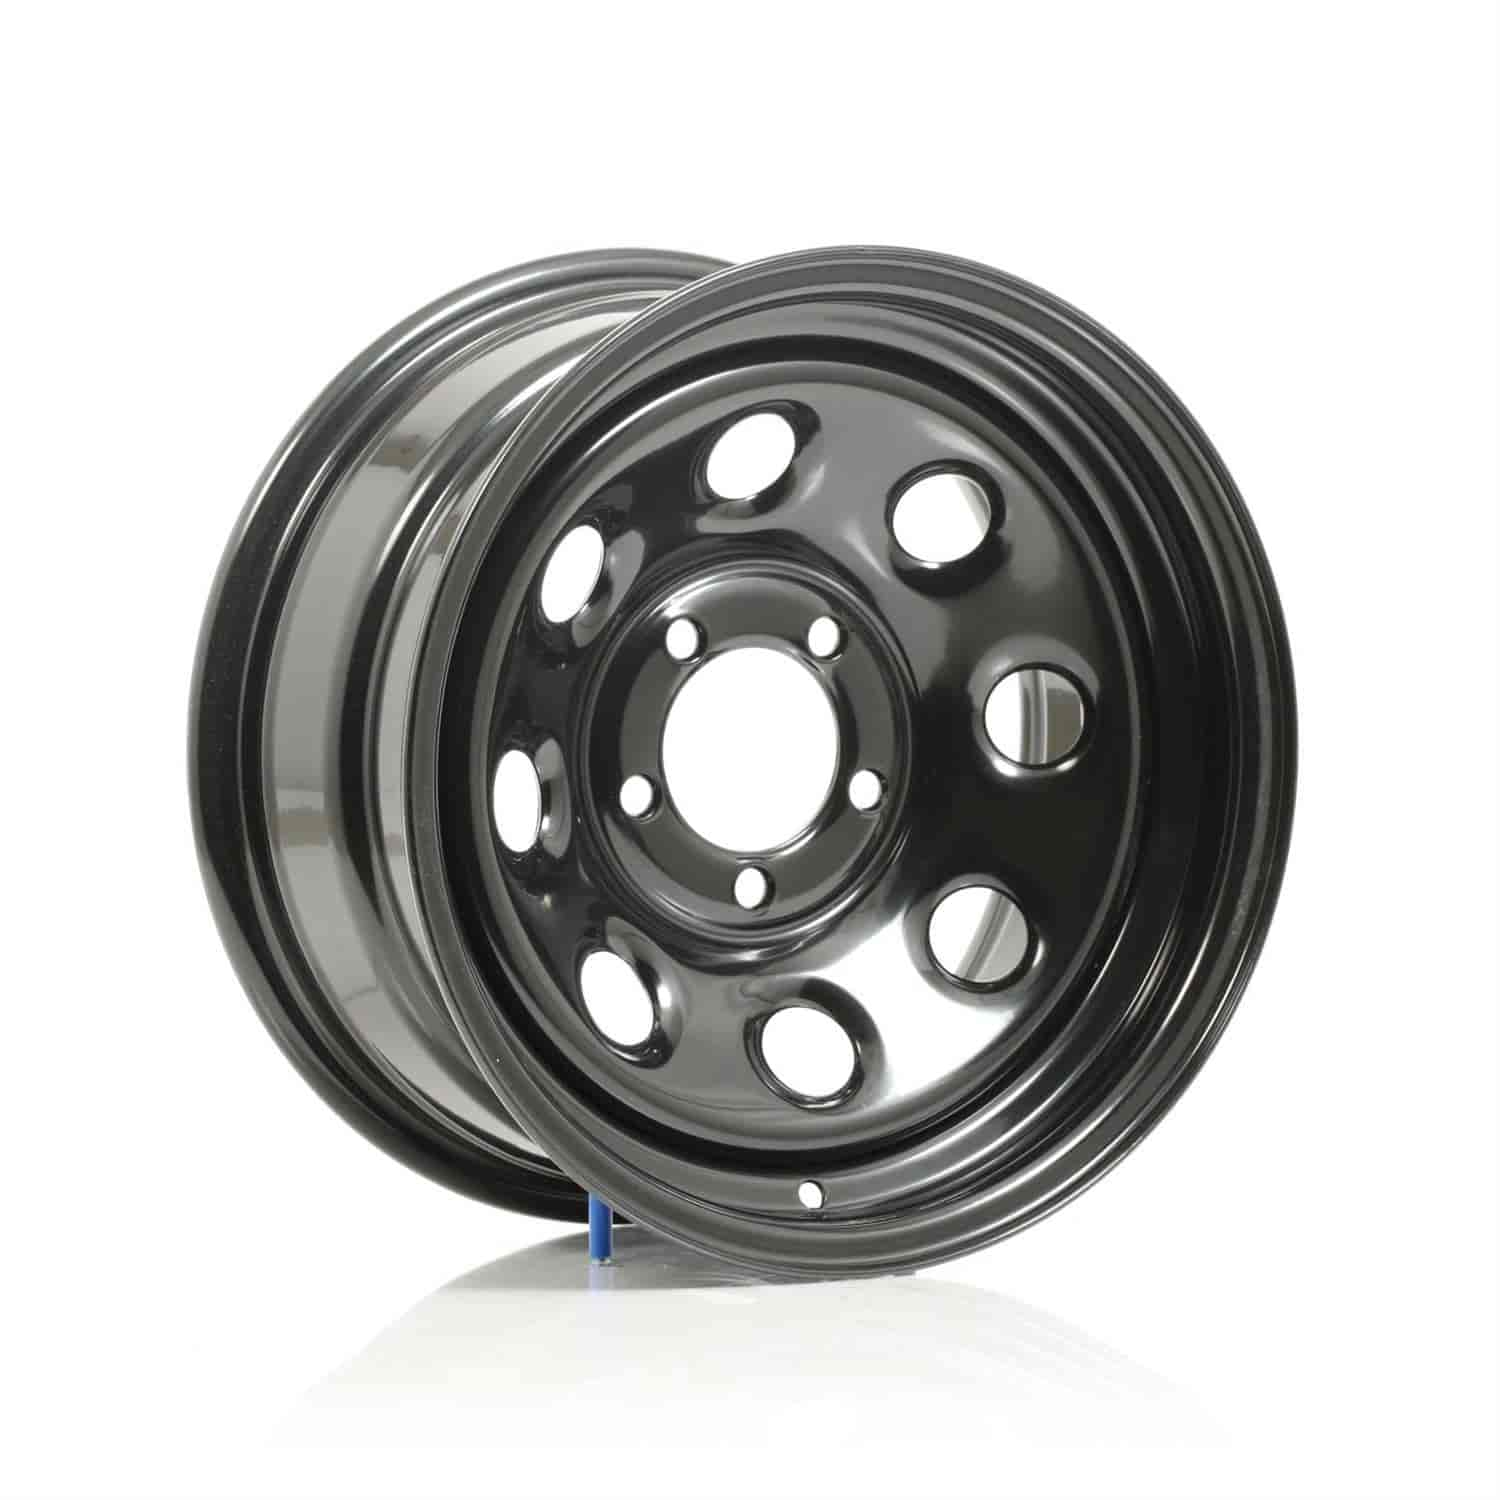 Cragar 3975712P - Cragar Black Soft 8 Wheels